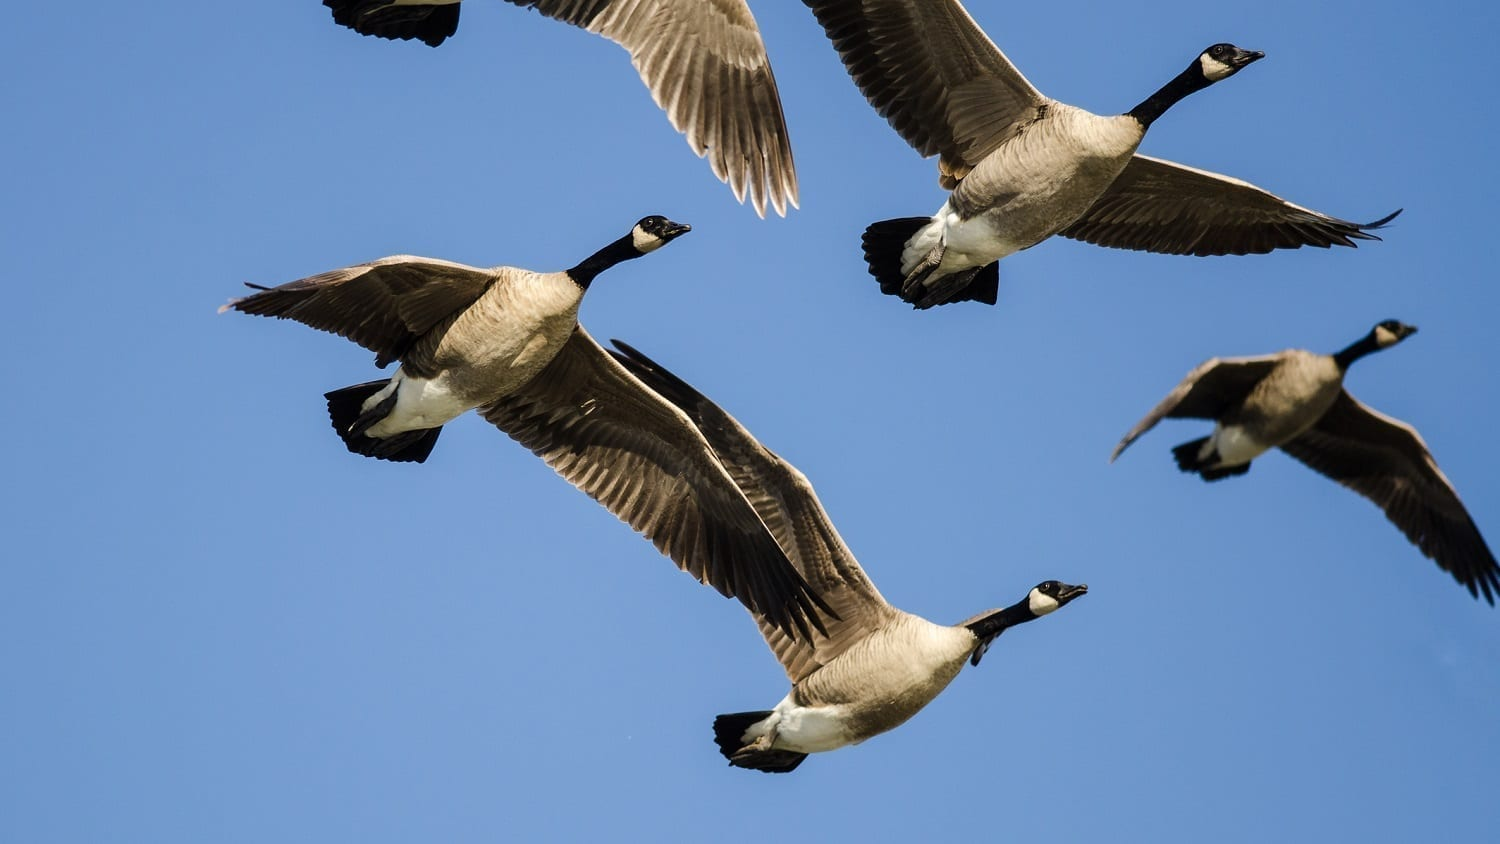 Canada Geese flying in formation: Photo 114363306 © Rck953 | Dreamstime.com